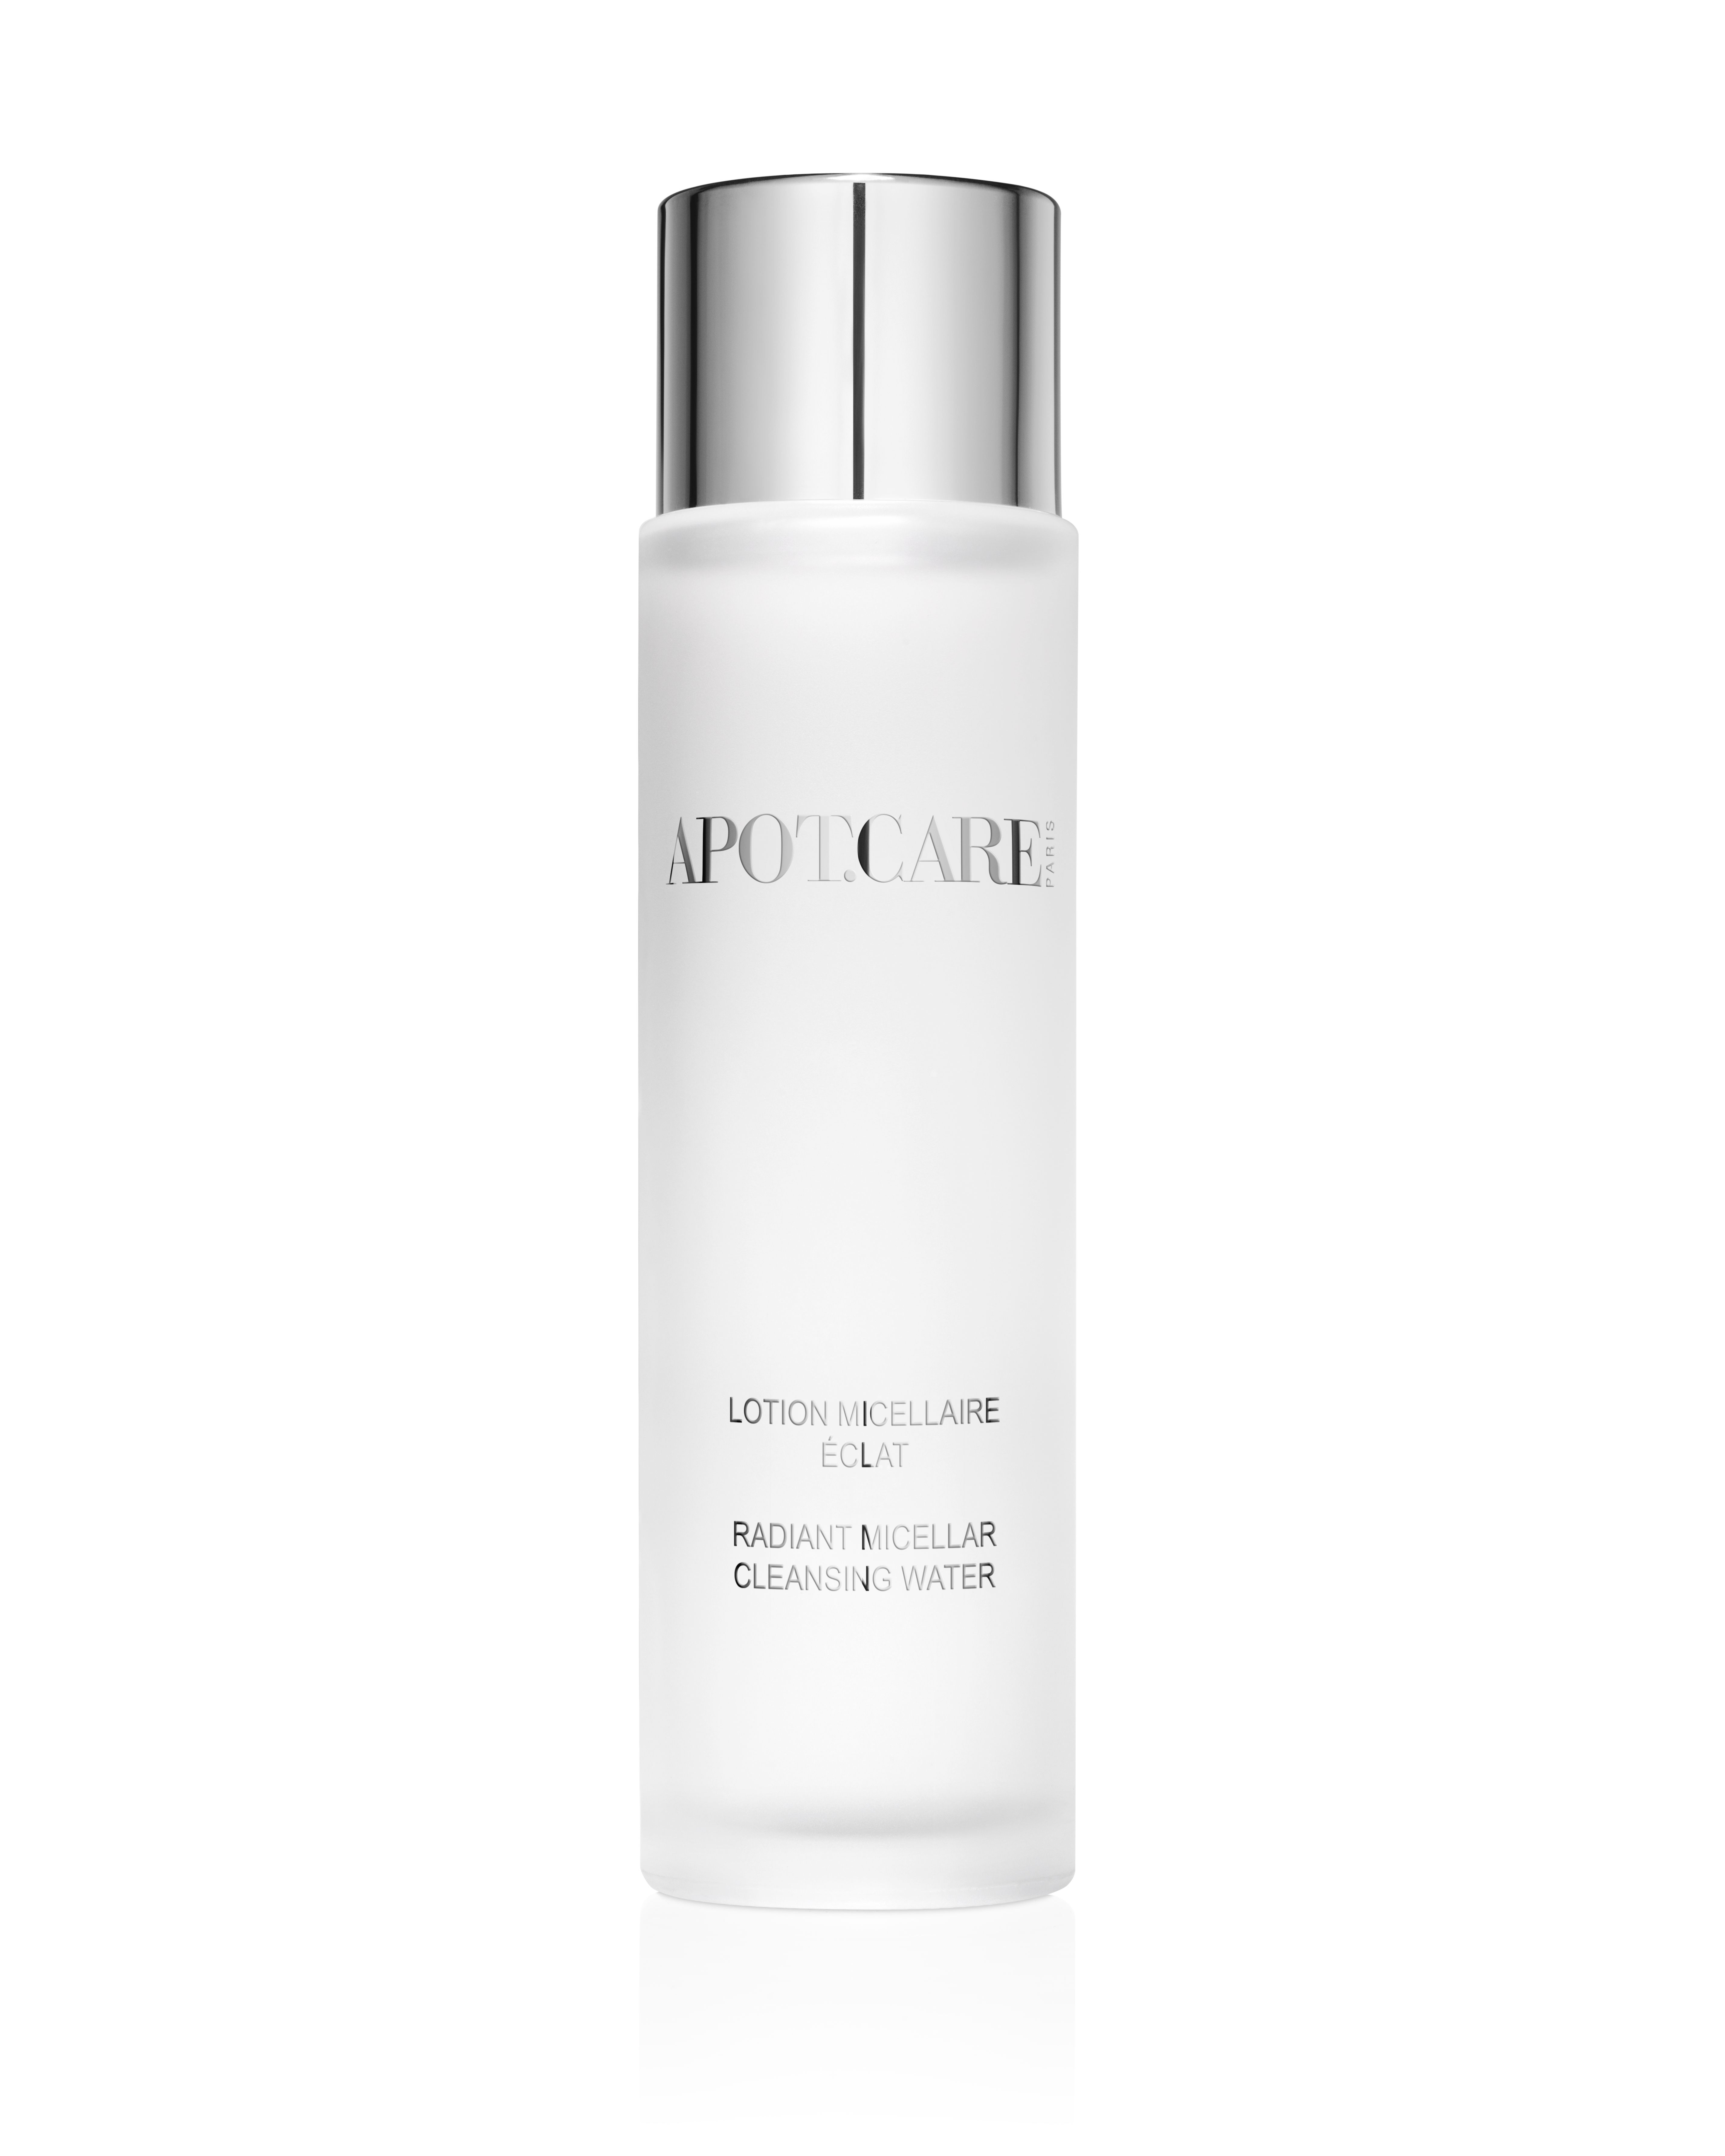 APOTCARE - LOTION MICELLAIRE ECLAT - RADIANT MICELLAR CLEANSING WATER - 33 Mo